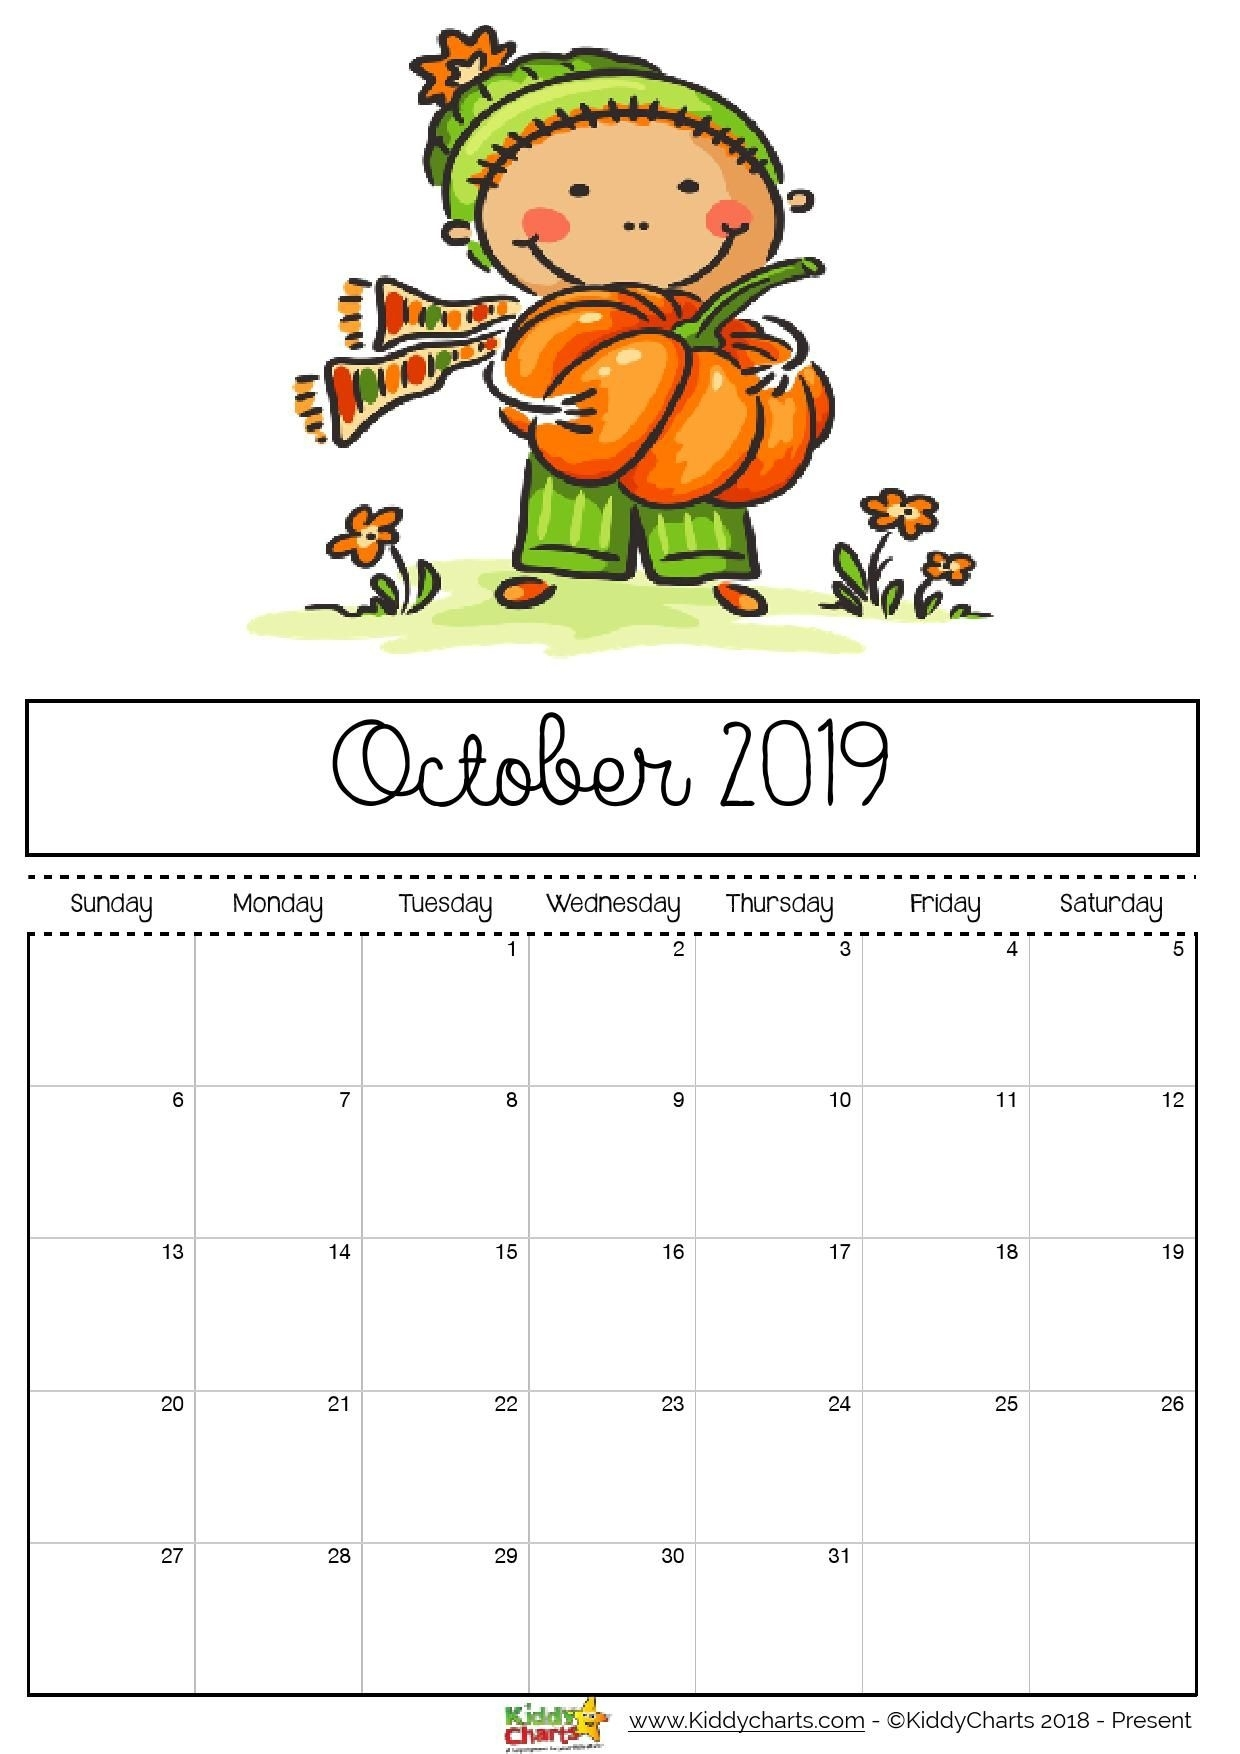 Check Out Our Fantastic Free 2019 Calendar For Your Child'S with Free Kindergarten Calendar Template 2019